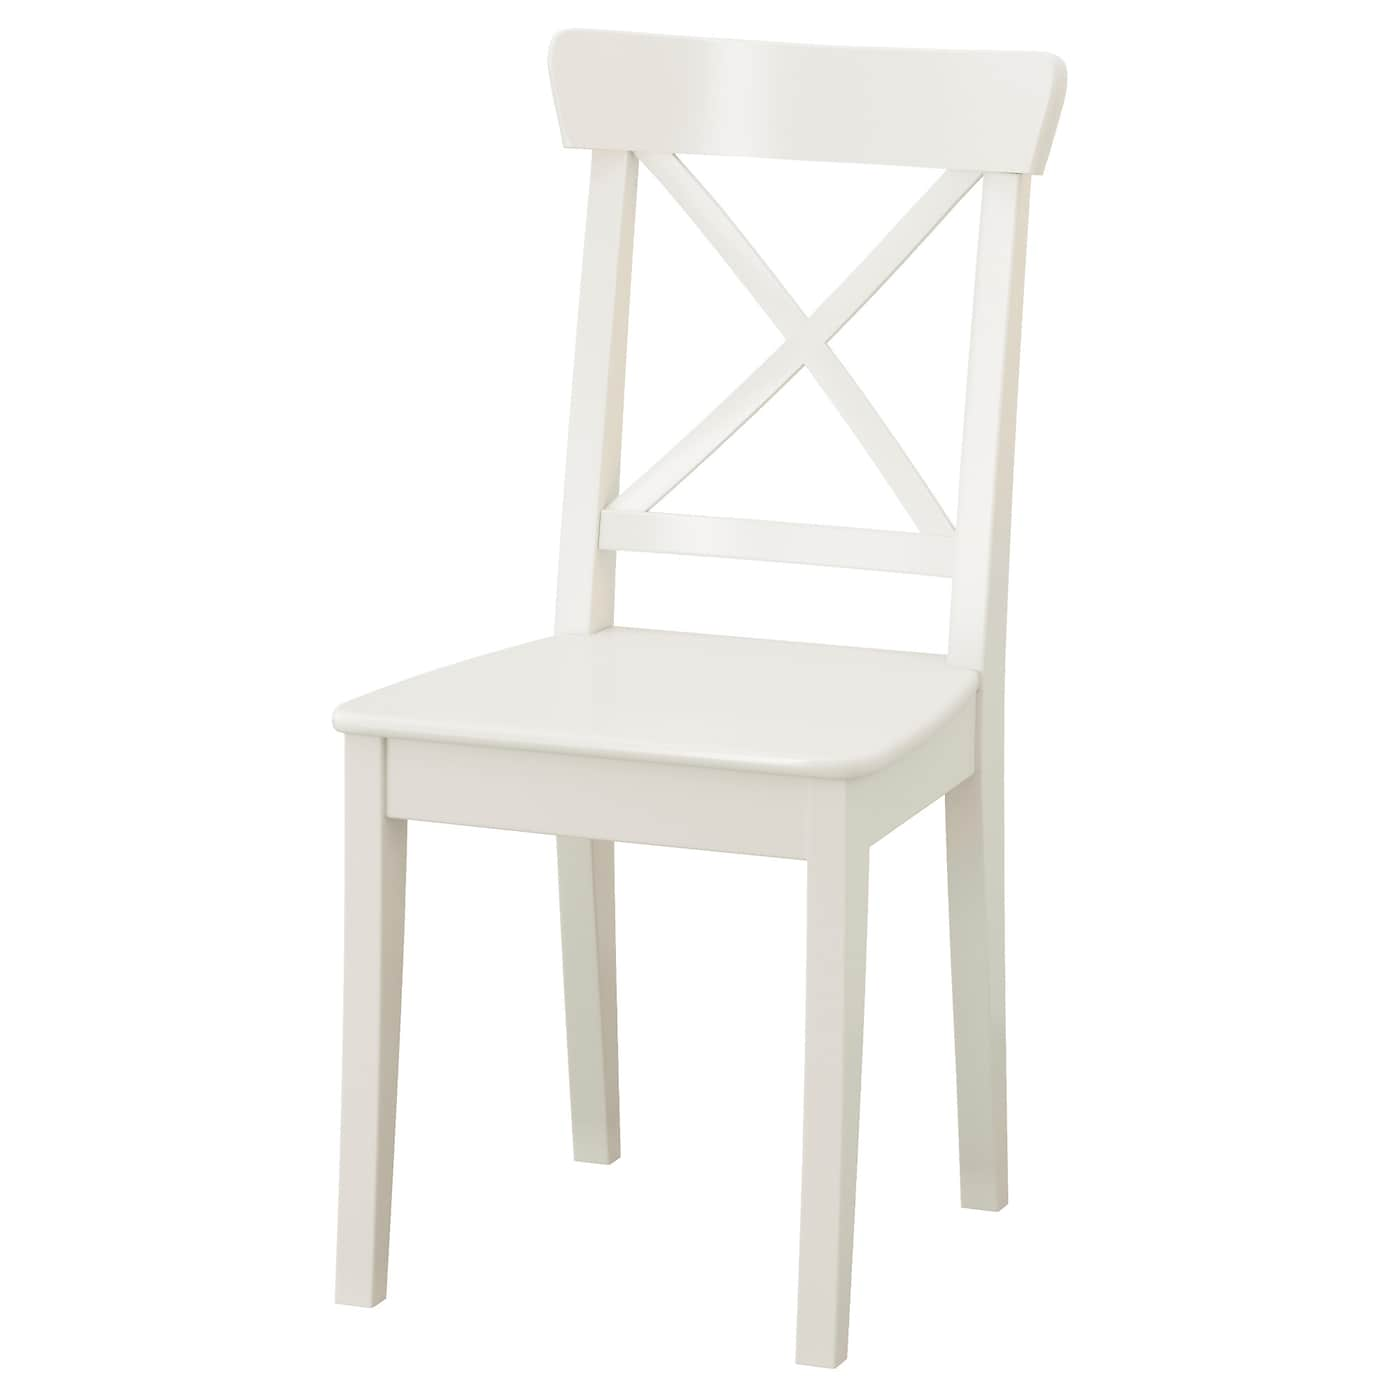 Dining chairs kitchen chairs ikea - Ikea wooden dining table chairs ...